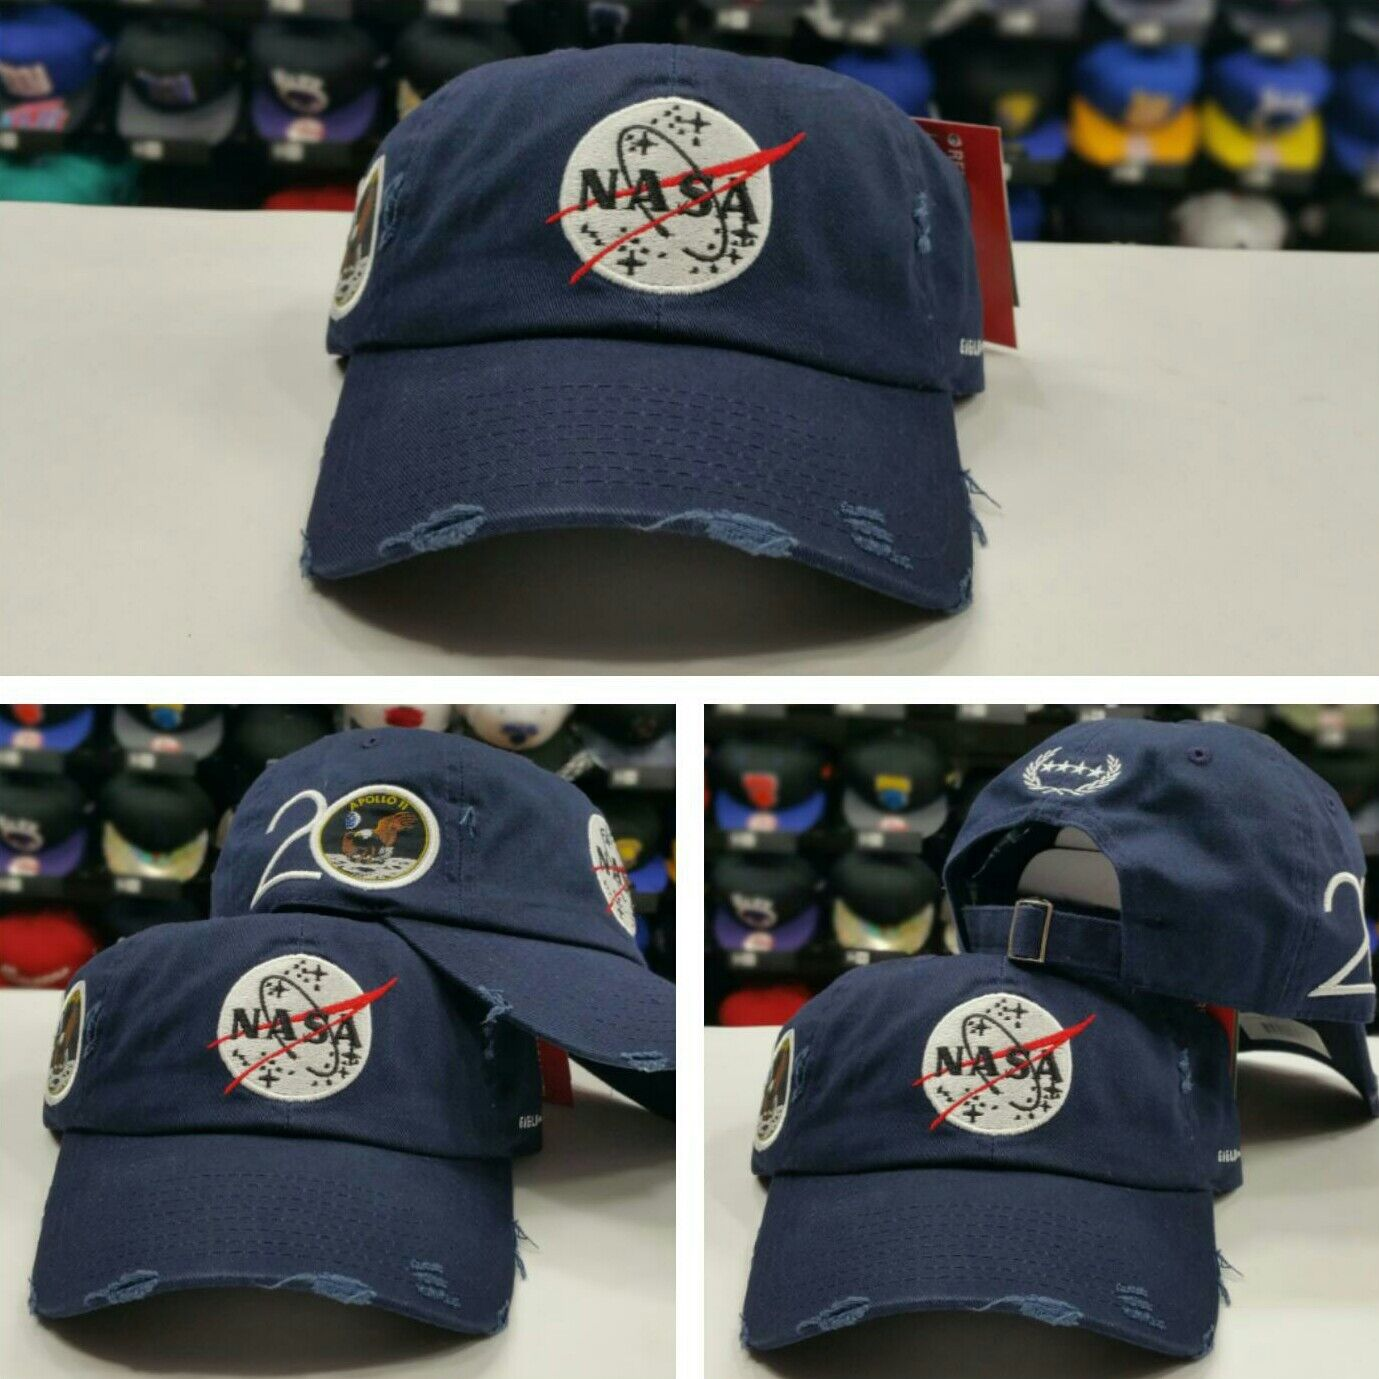 Details about NAVY Field Grade Distressed NASA Brand Dad Strapback Snapback  Hat b8d89d2b365